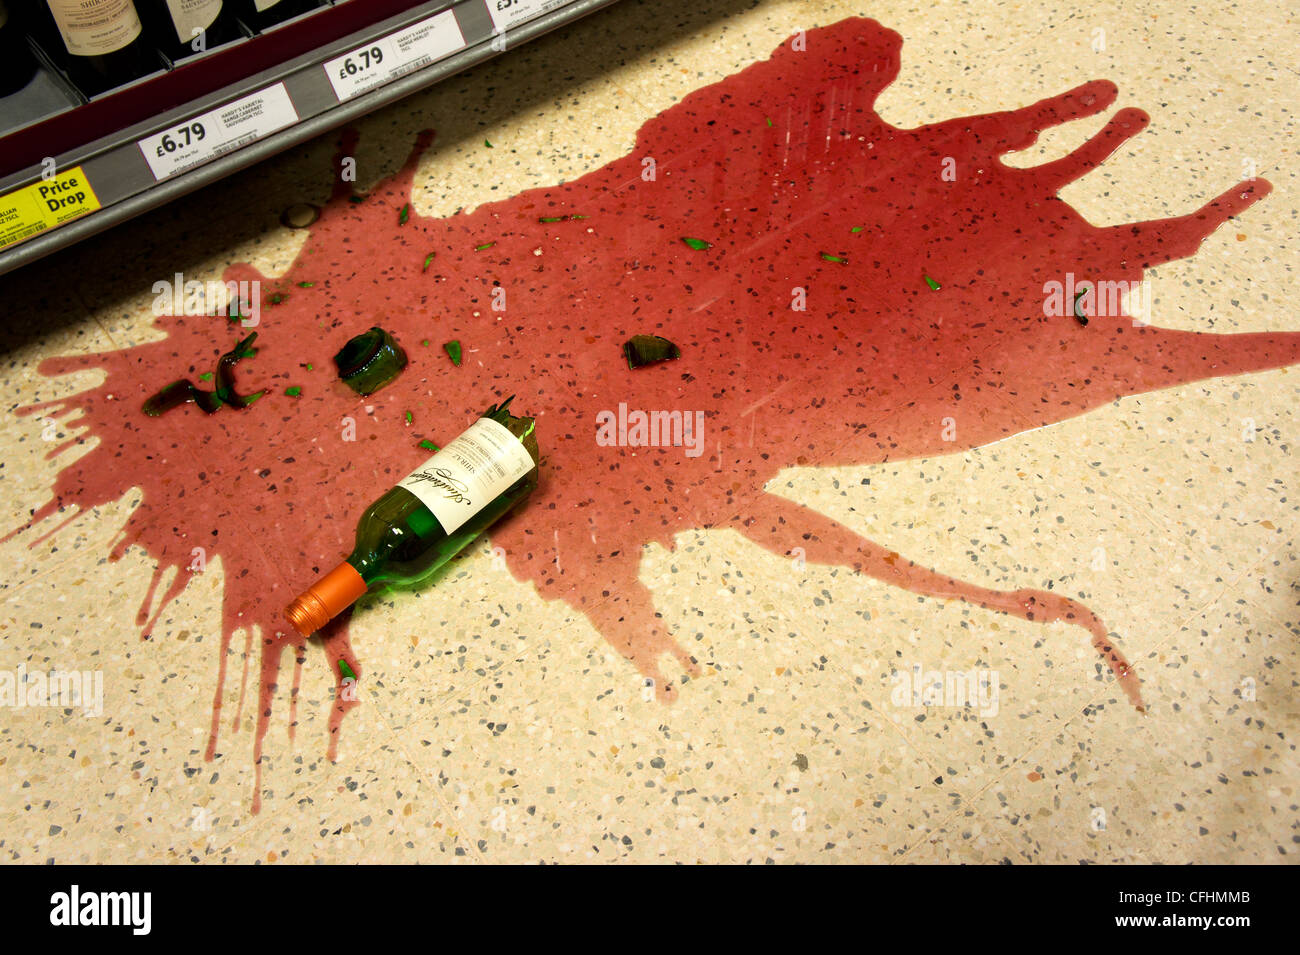 A bottle of Red Wine that has been dropped and smashed on the floor of a Supermarket - Stock Image